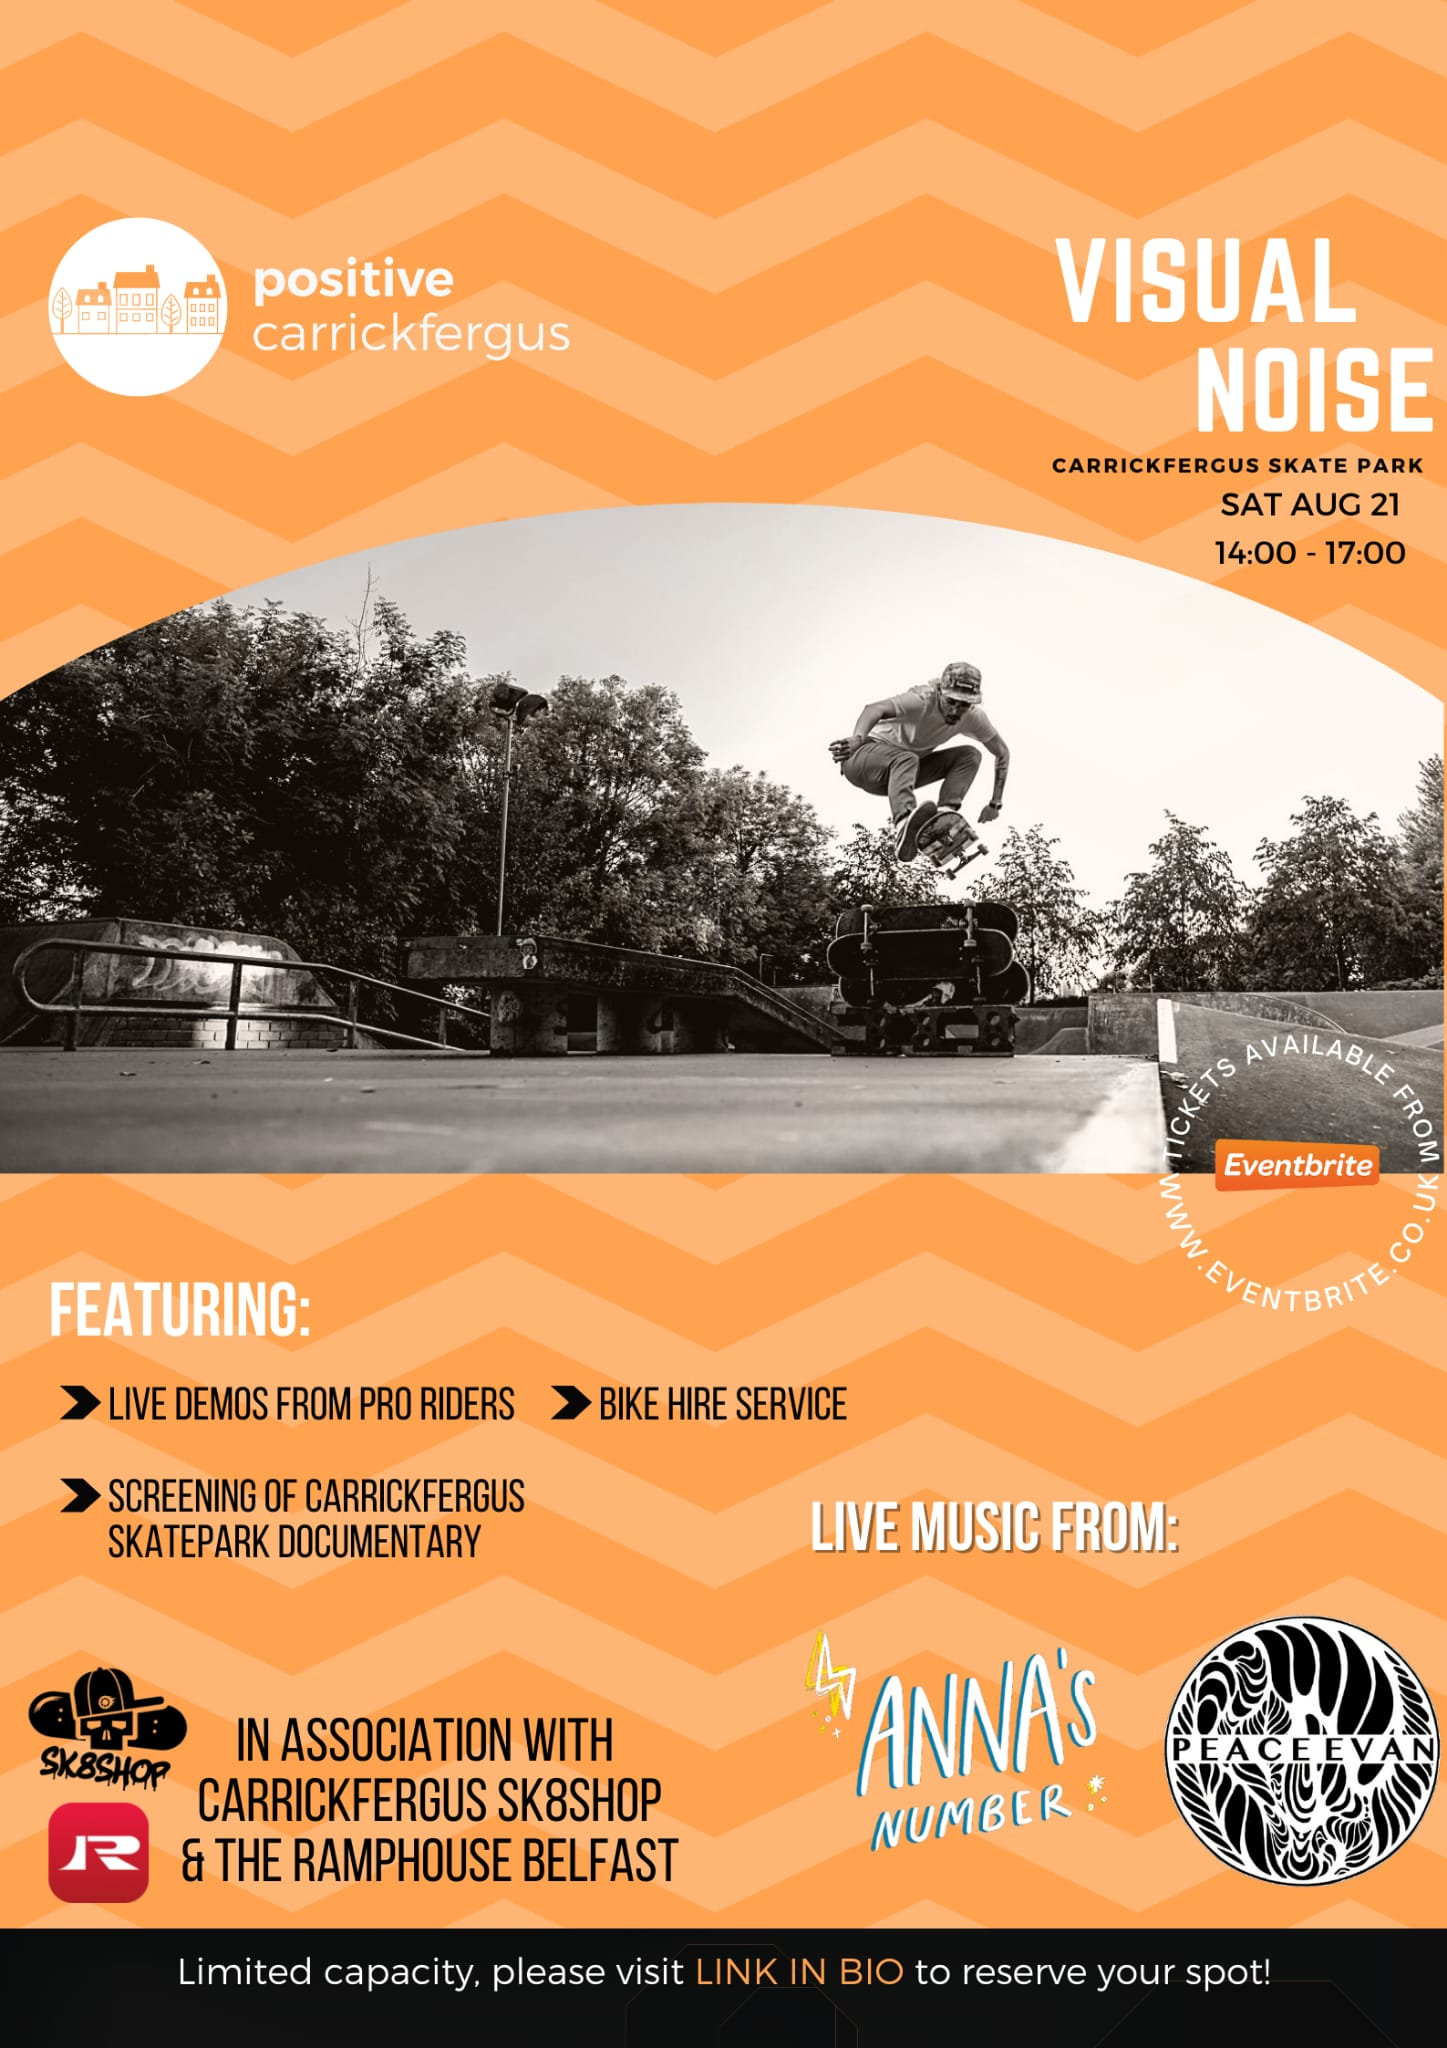 A poster for an urban sports event showing a skate park and skateboarder